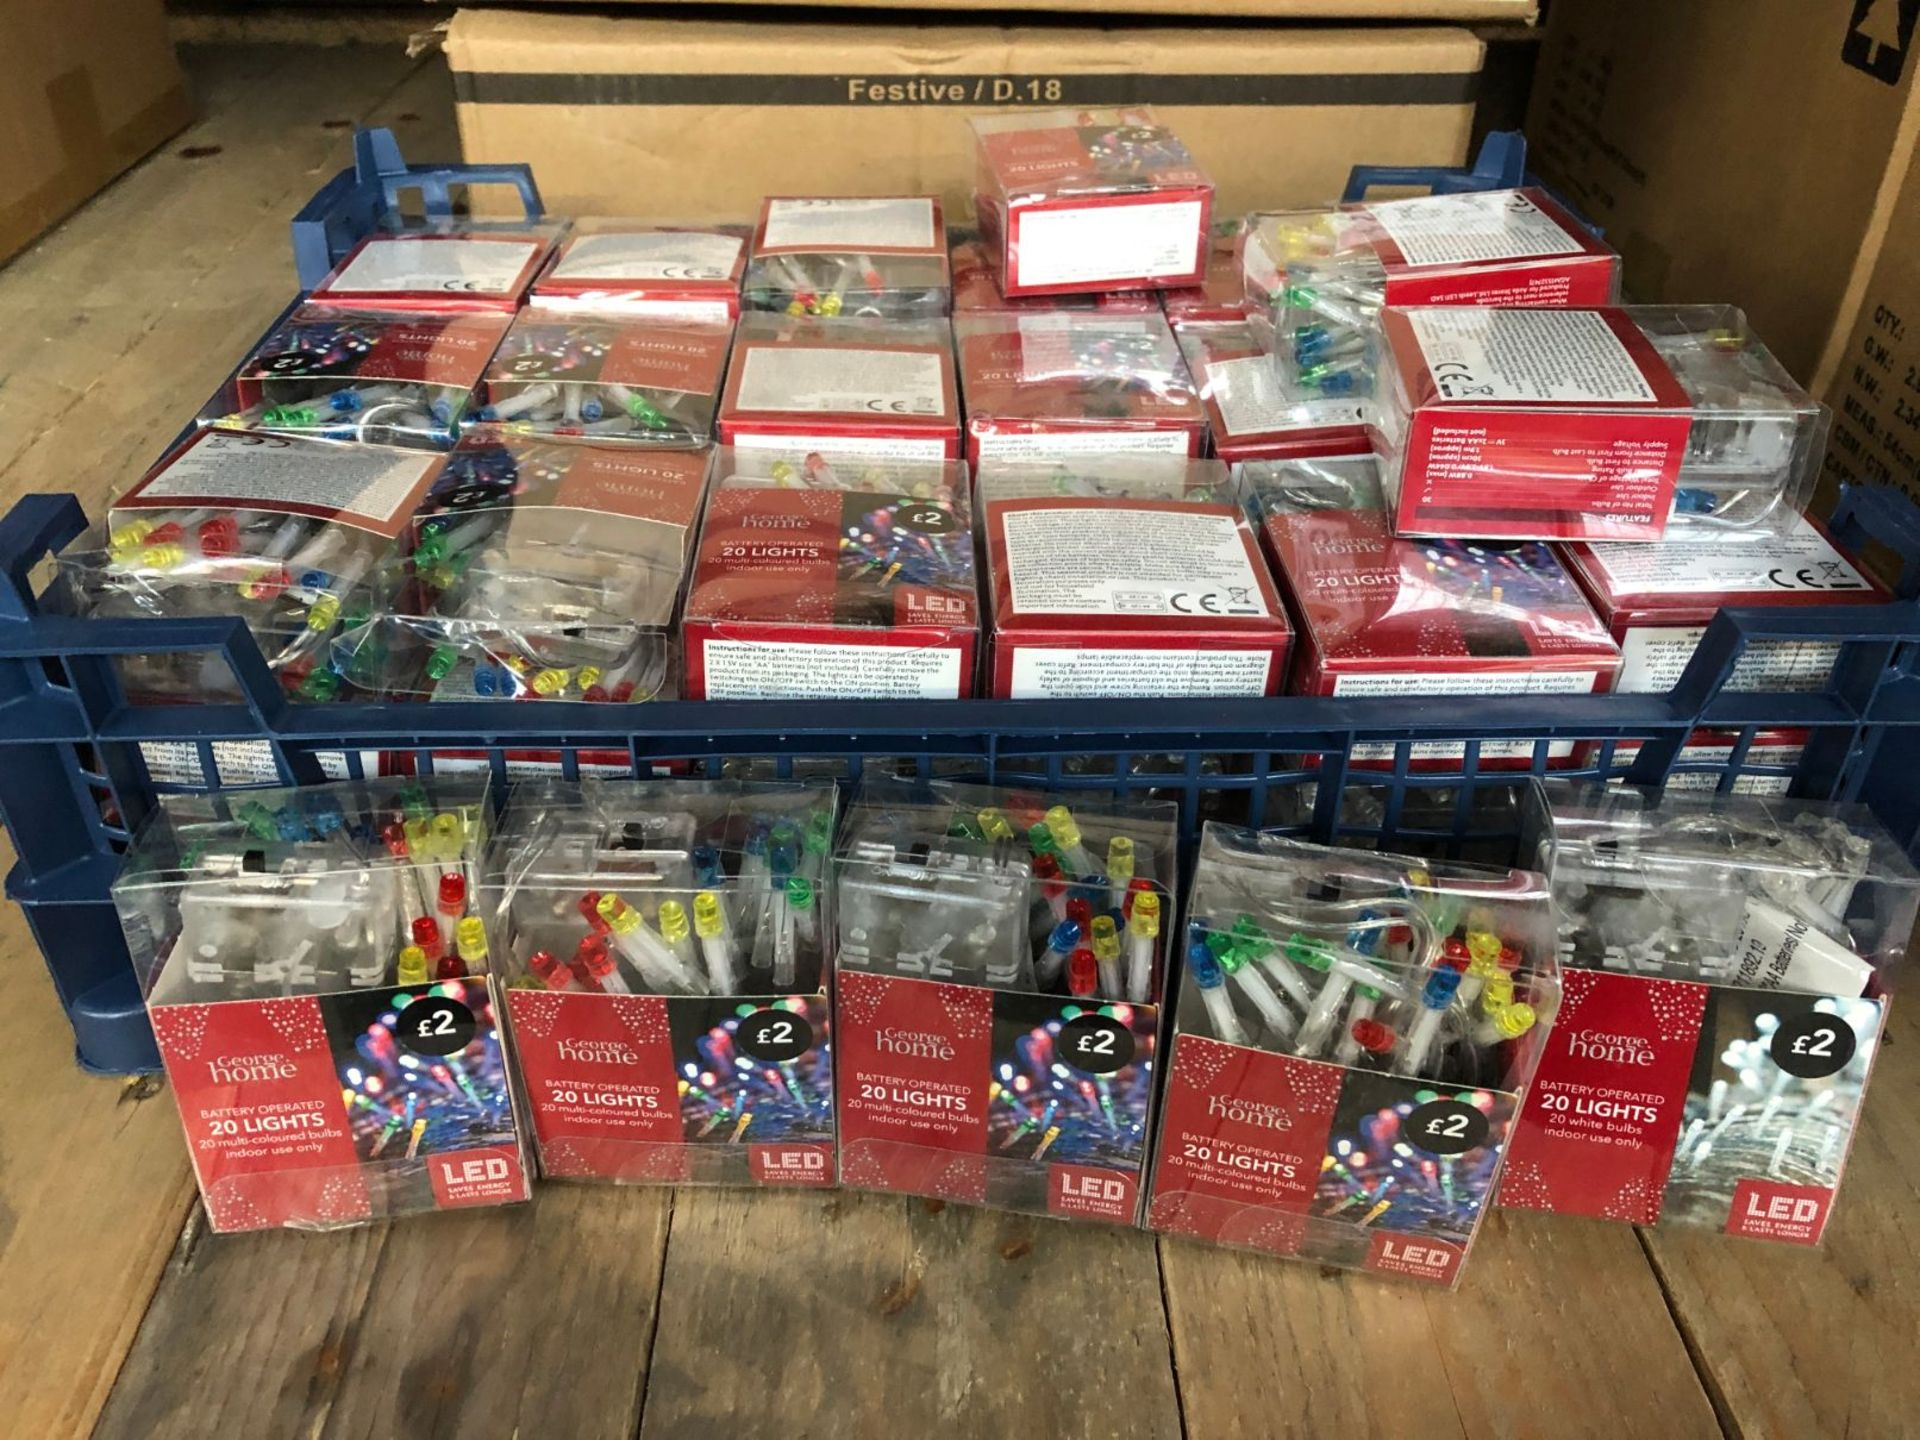 APPROX 62 PACKS OF MULTI-COLOURED LED CHRISTMAS LIGHTS / COMBINED RRP £124.00 / LIKE NEW (IMAGES ARE